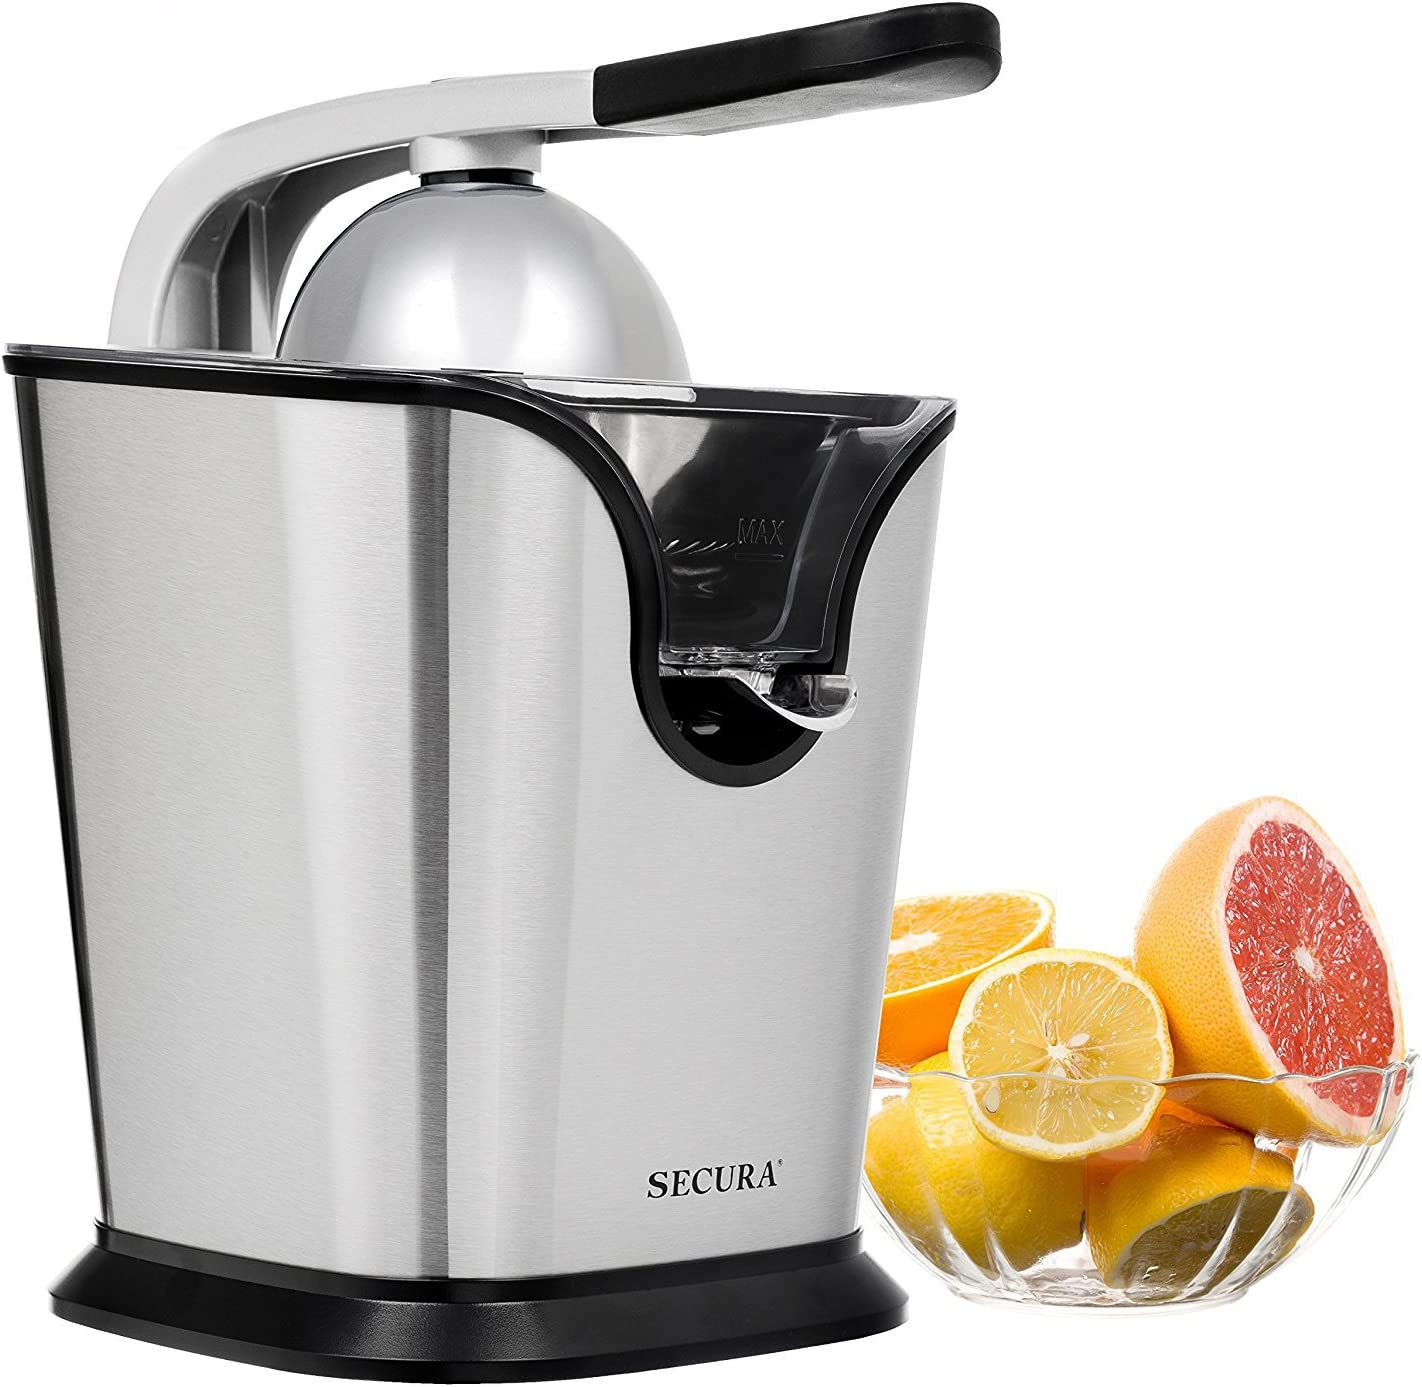 Secura Electric Citrus Juicer Press | 160 Watt Stainless